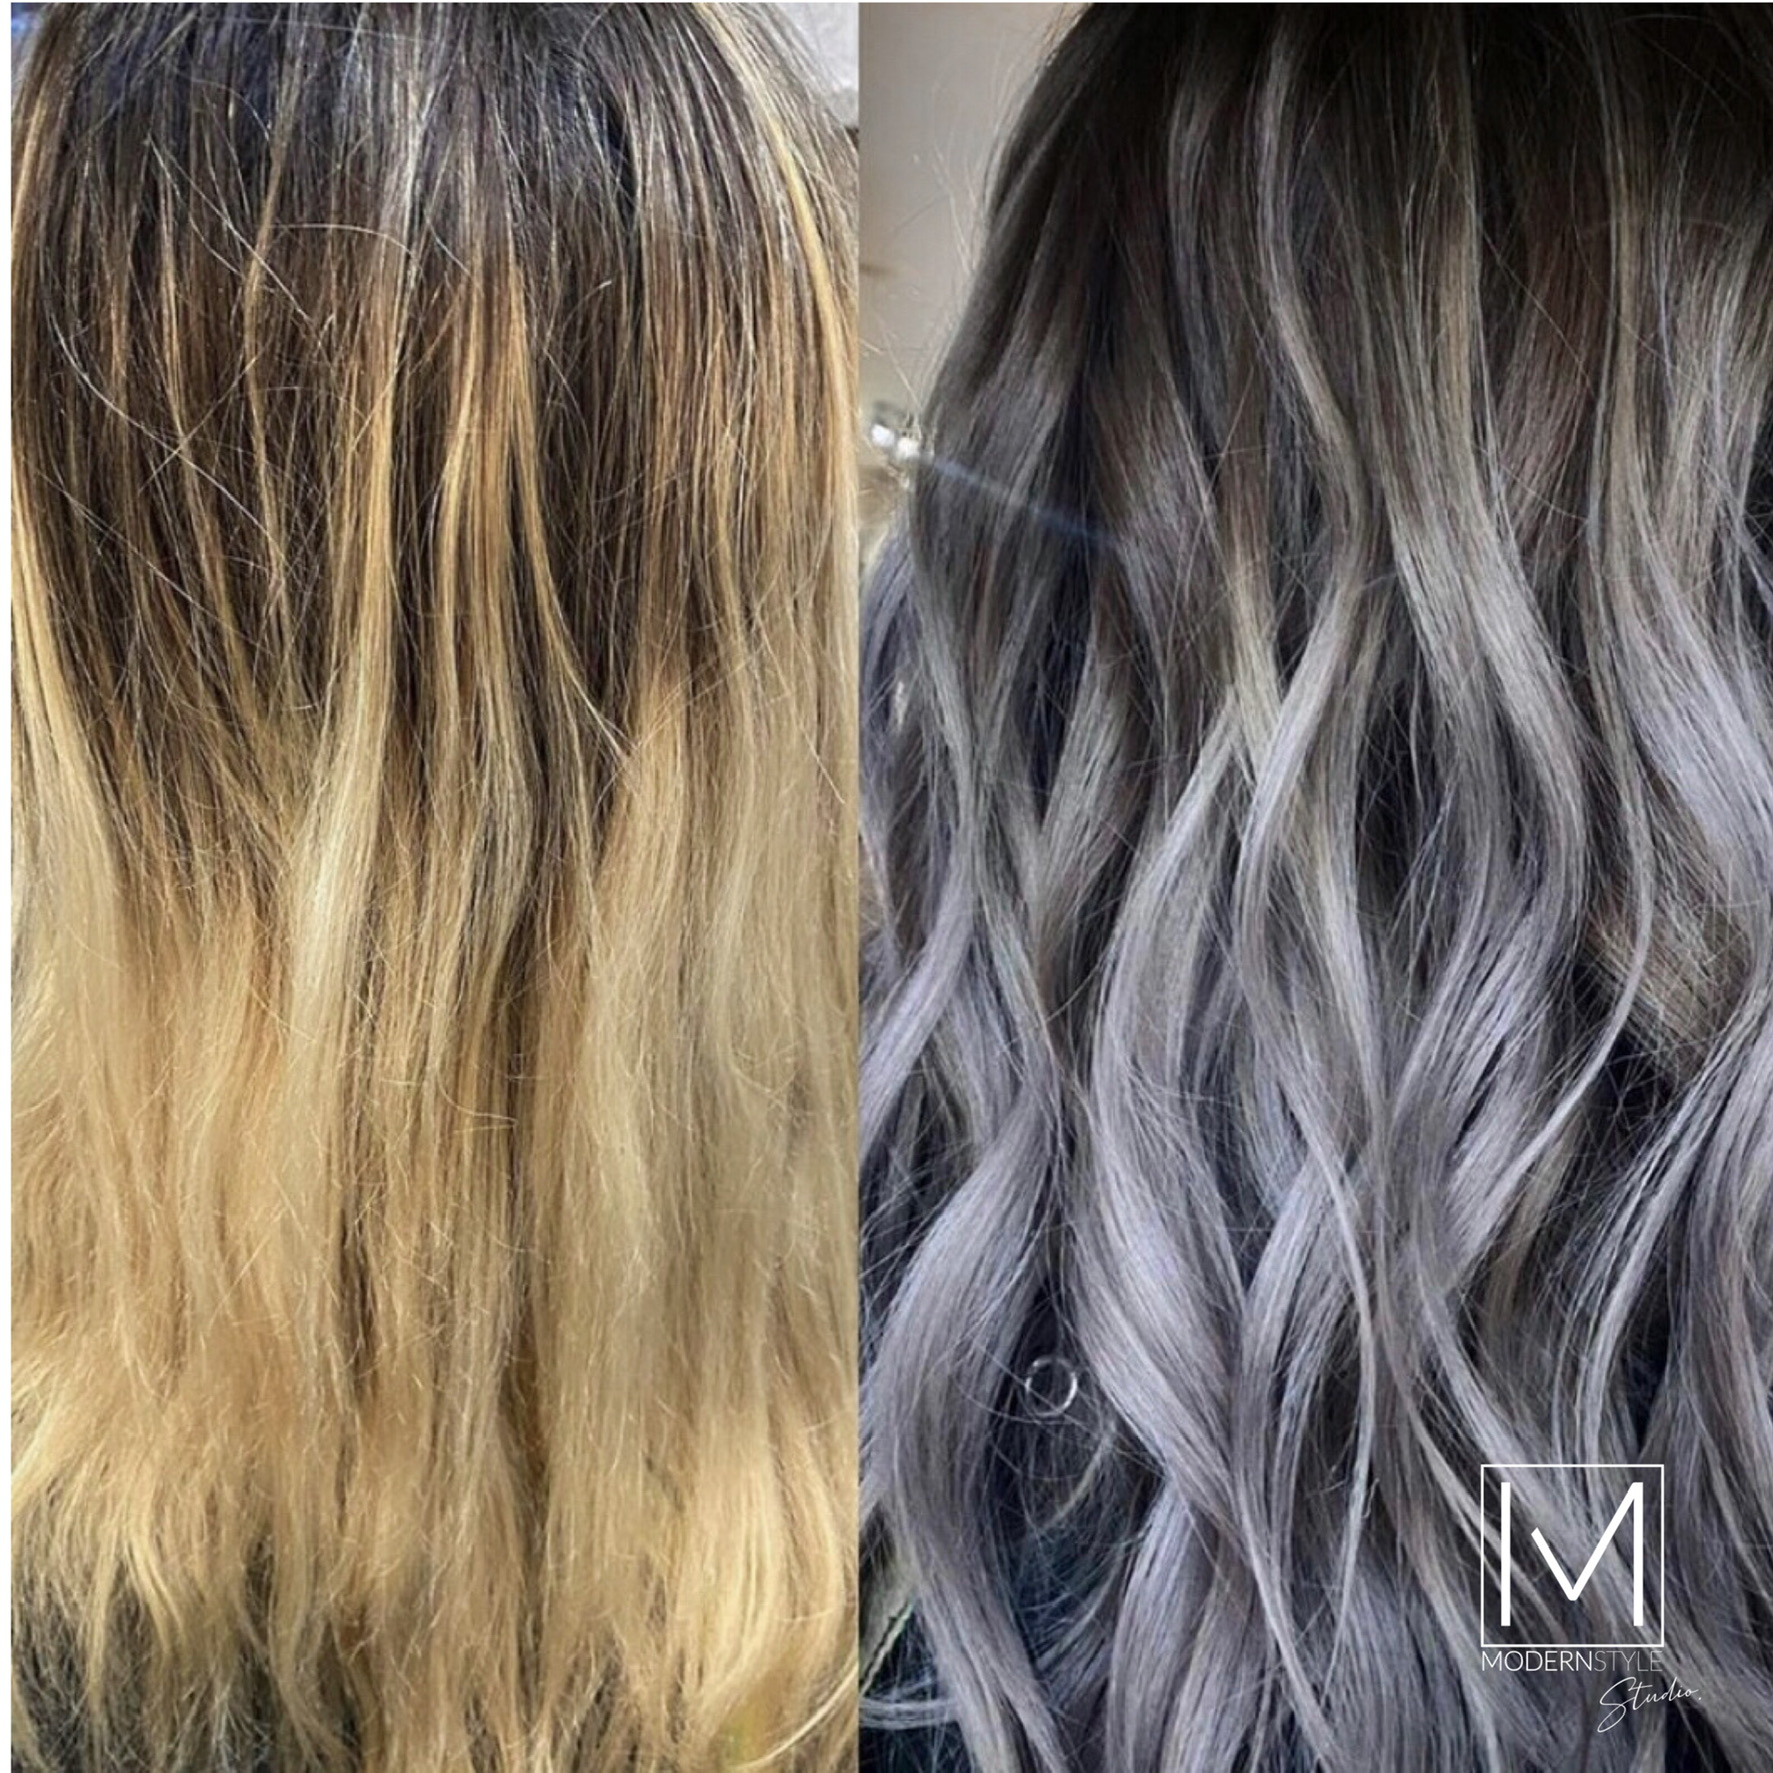 Best hair salon near me, Color correction specialist Charlotte, best colorist in Charlotte NC, top salons in Charlotte NC, Olaplex salon Charlotte, blonde specialist in Charlotte, Goldwell salon Charlotte, best hair stylist in Charlotte, top hair salons near me, hair salons near me, Waverly Charlotte, Rea Farms, top hair salons in Charlotte nc, Olaplex stylist near me, blonde specialist near me